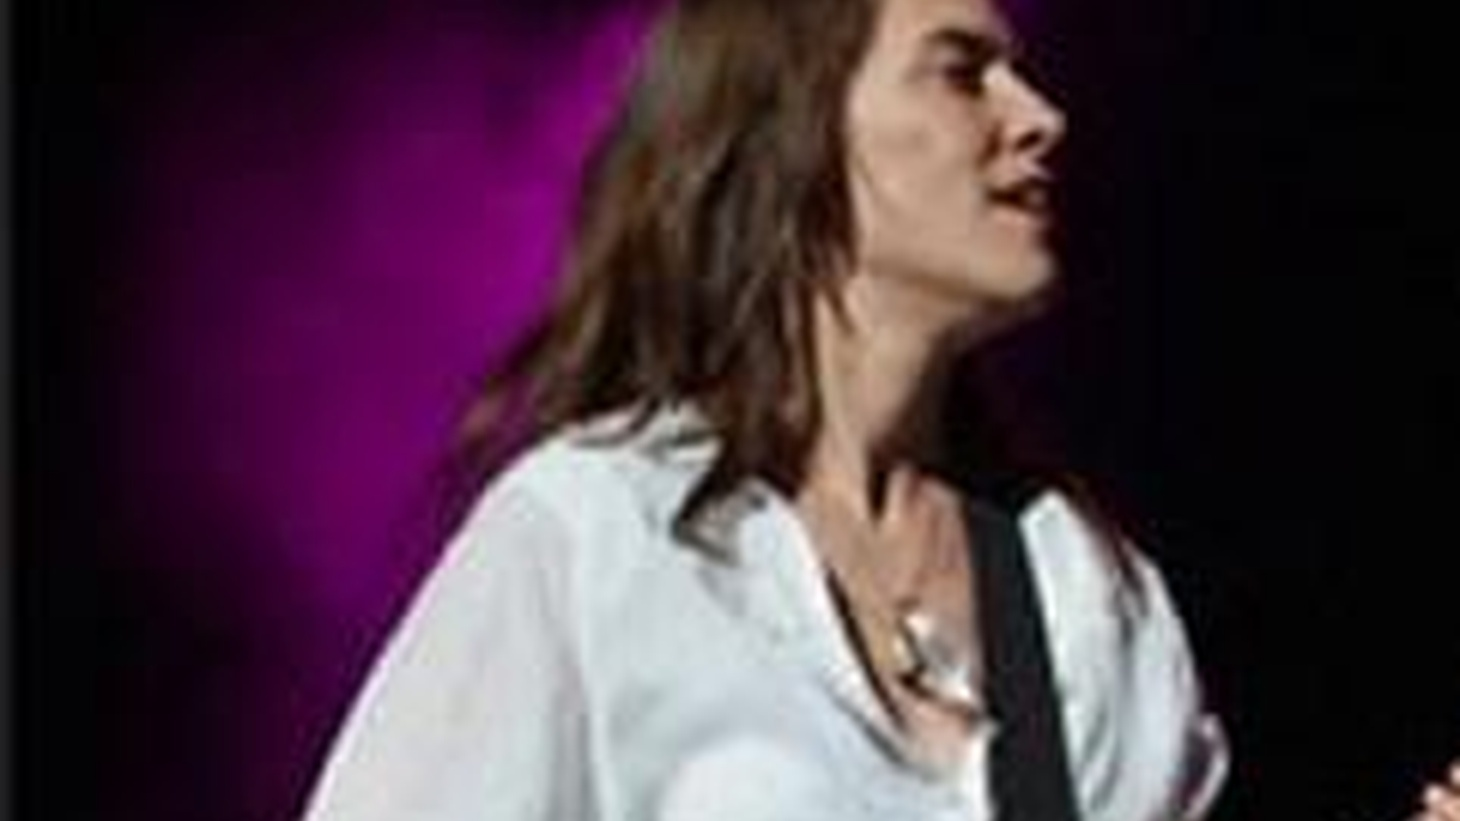 Canadian singer, Feist, performs her songs on Morning Becomes Eclectic at 11:15am. Click Here to Watch!